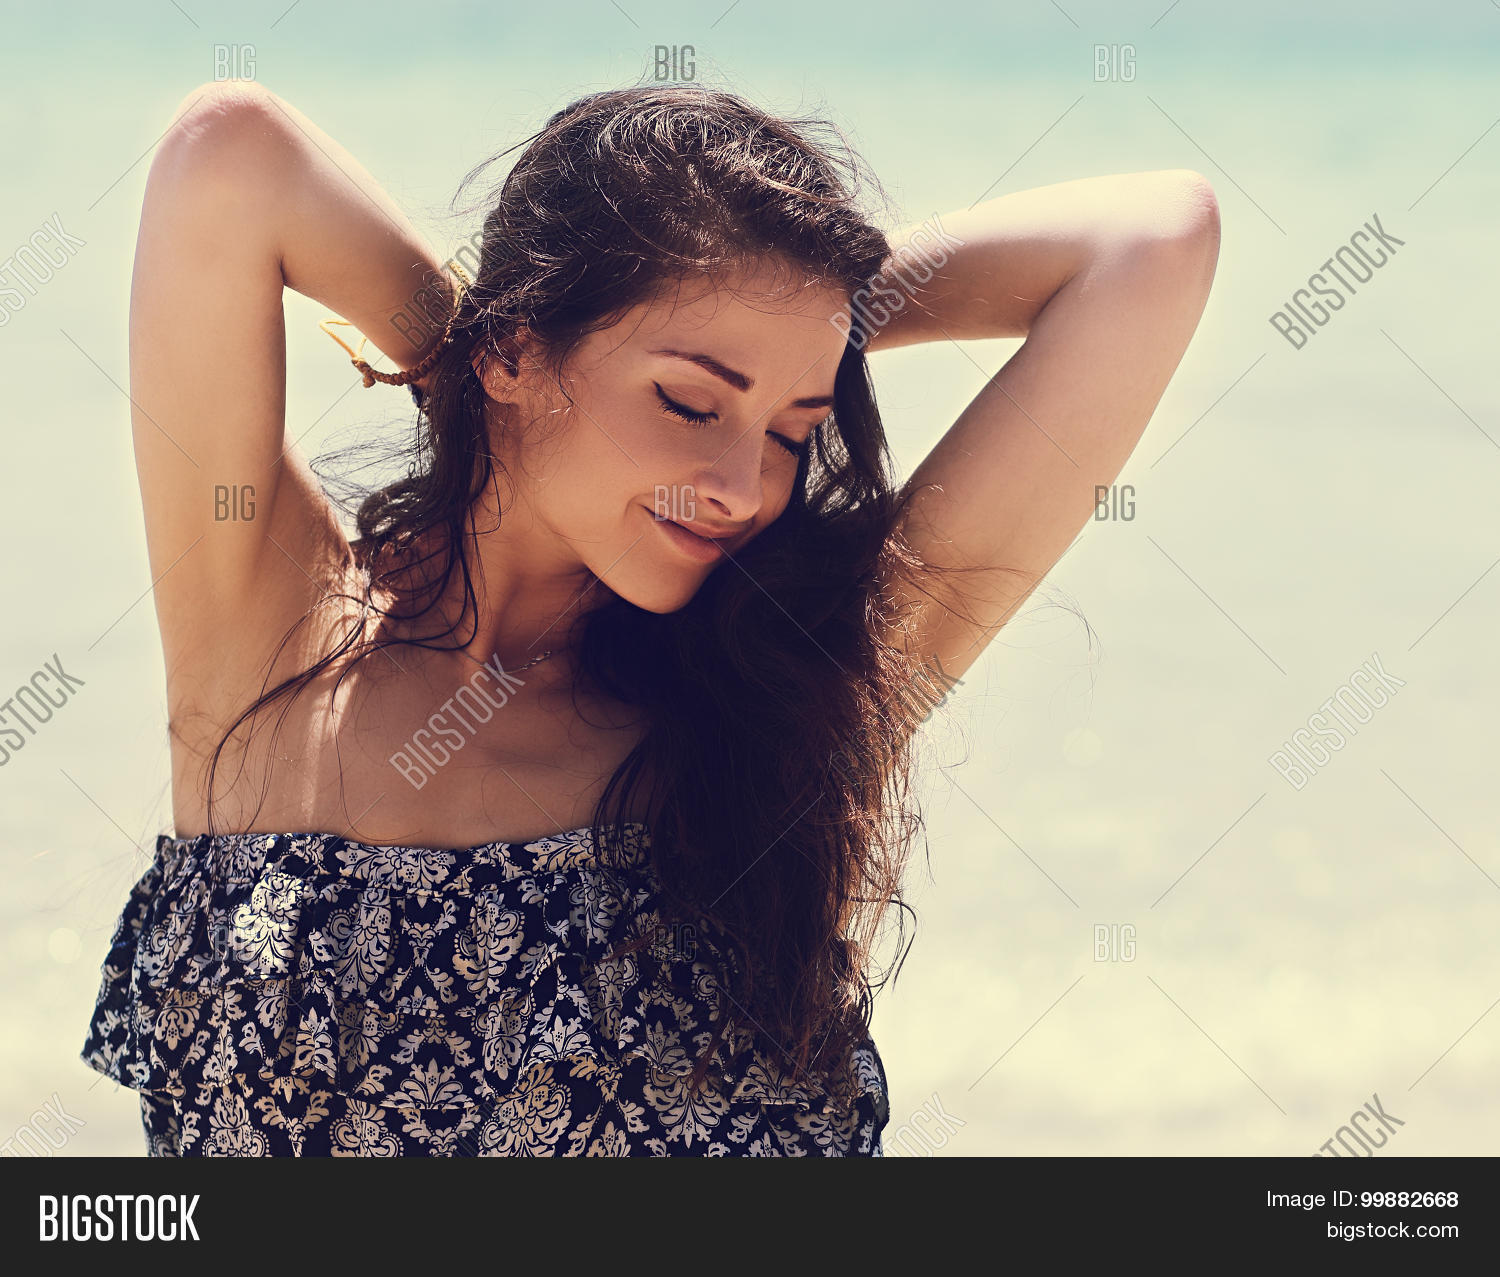 vintage armpits Relaxing Beautiful Woman With Closed Eyes And Epilation Armpits. Vintage